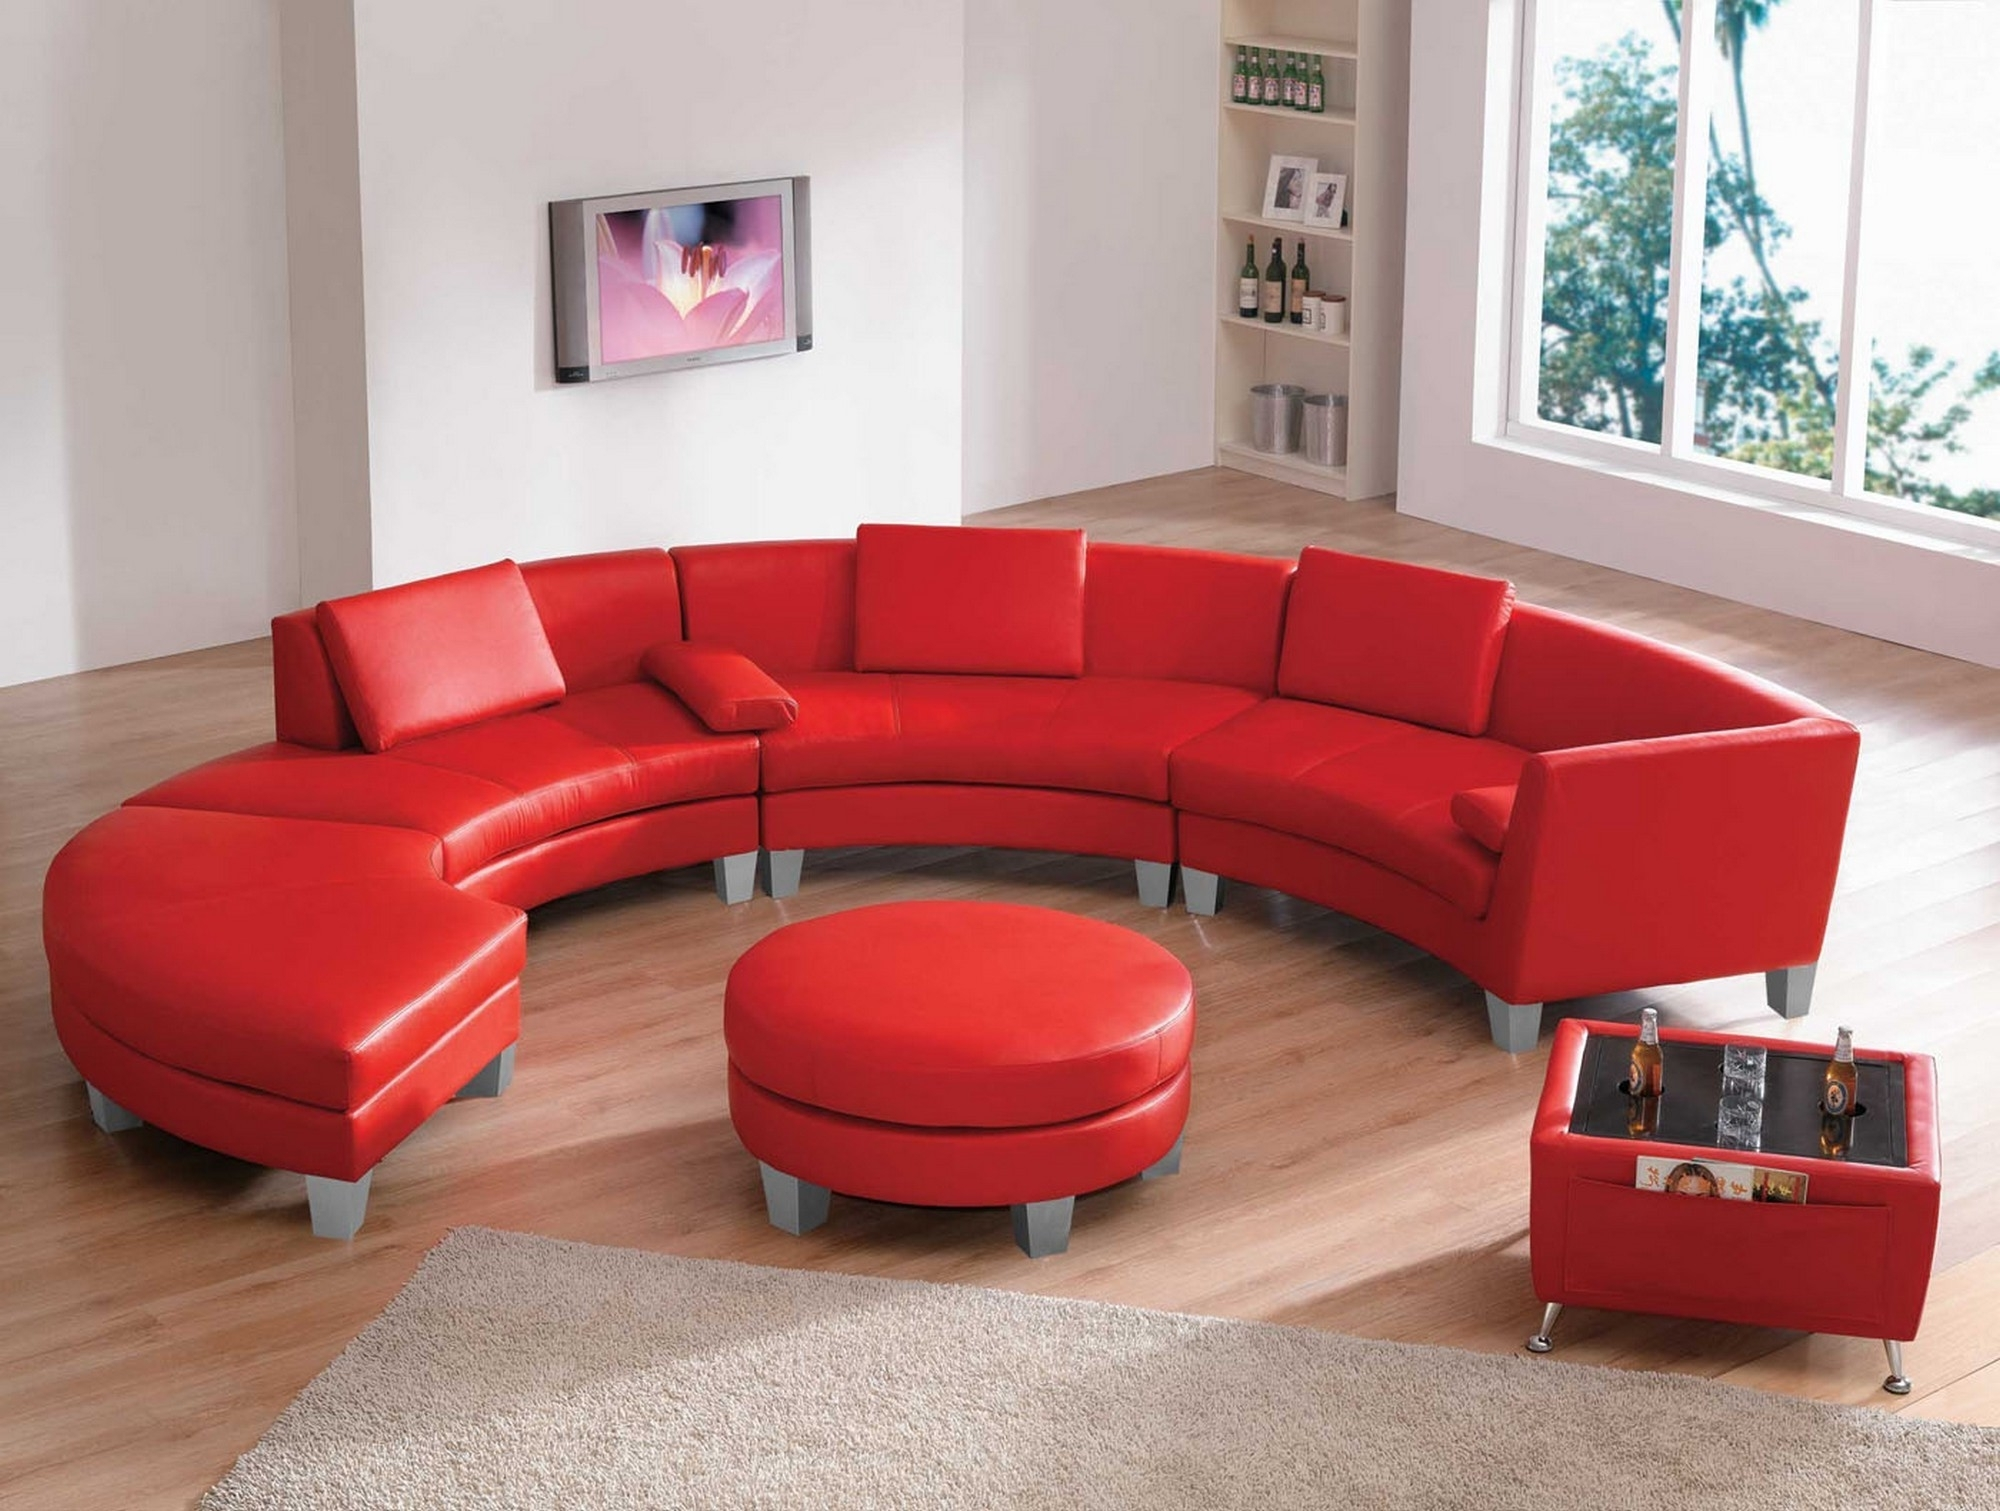 Favorite Luxutr Red Faux Leather Sofa Mixed White Cushions And Chromed Regarding Red Faux Leather Sectionals (View 2 of 15)